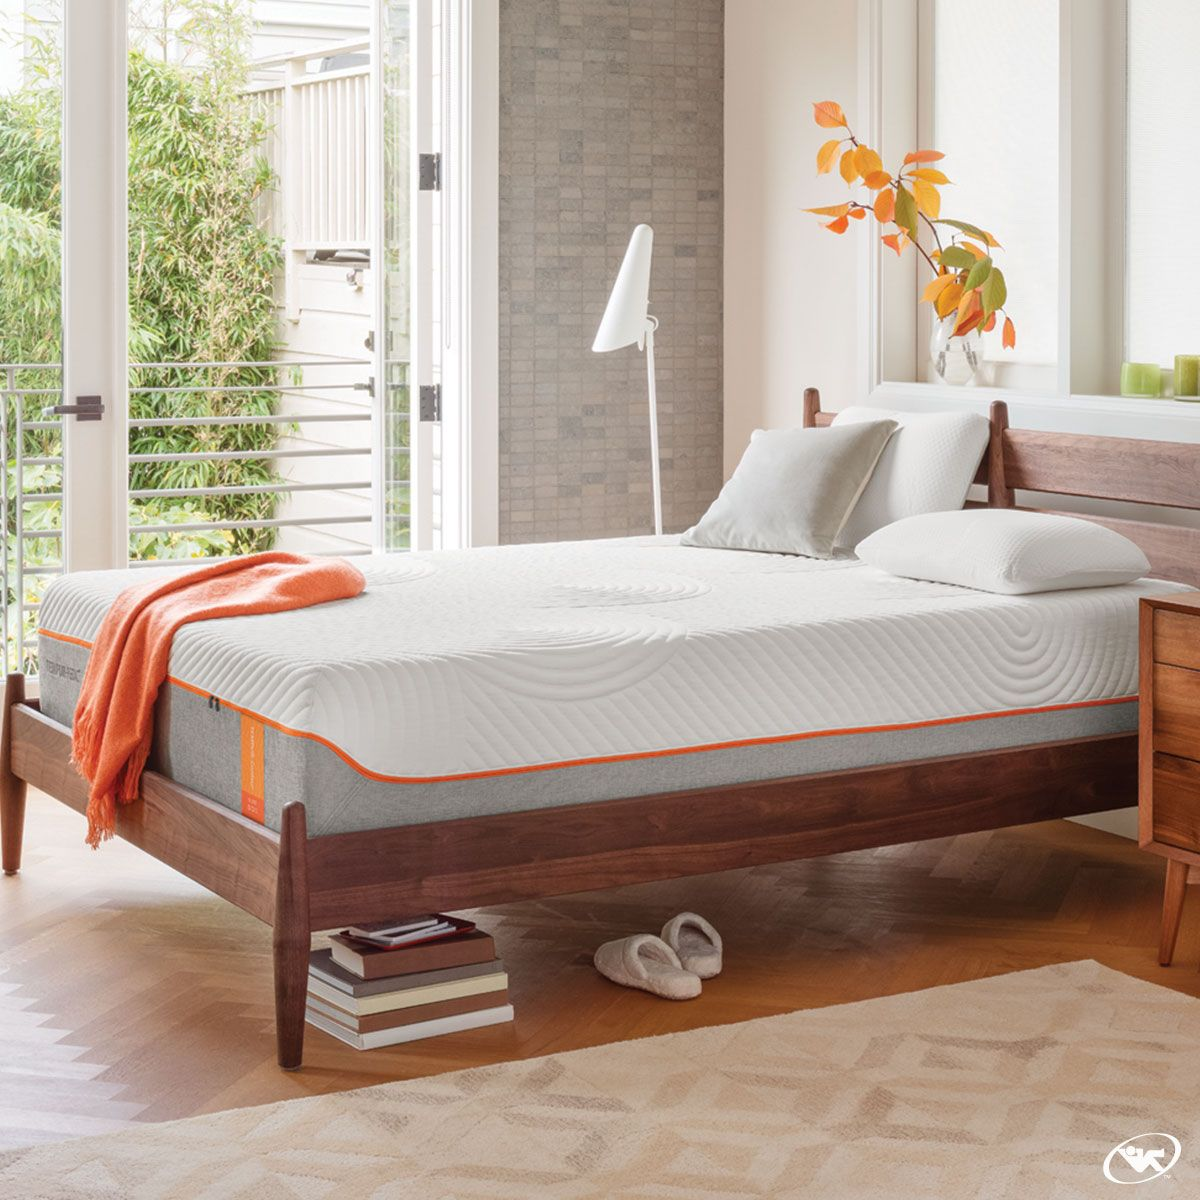 Experience Quality Sleep Like Never Before Receive 300 In Free Product With The Purchase Of Any Tempurpedic Mattress Better Sleep Better Health Mattr